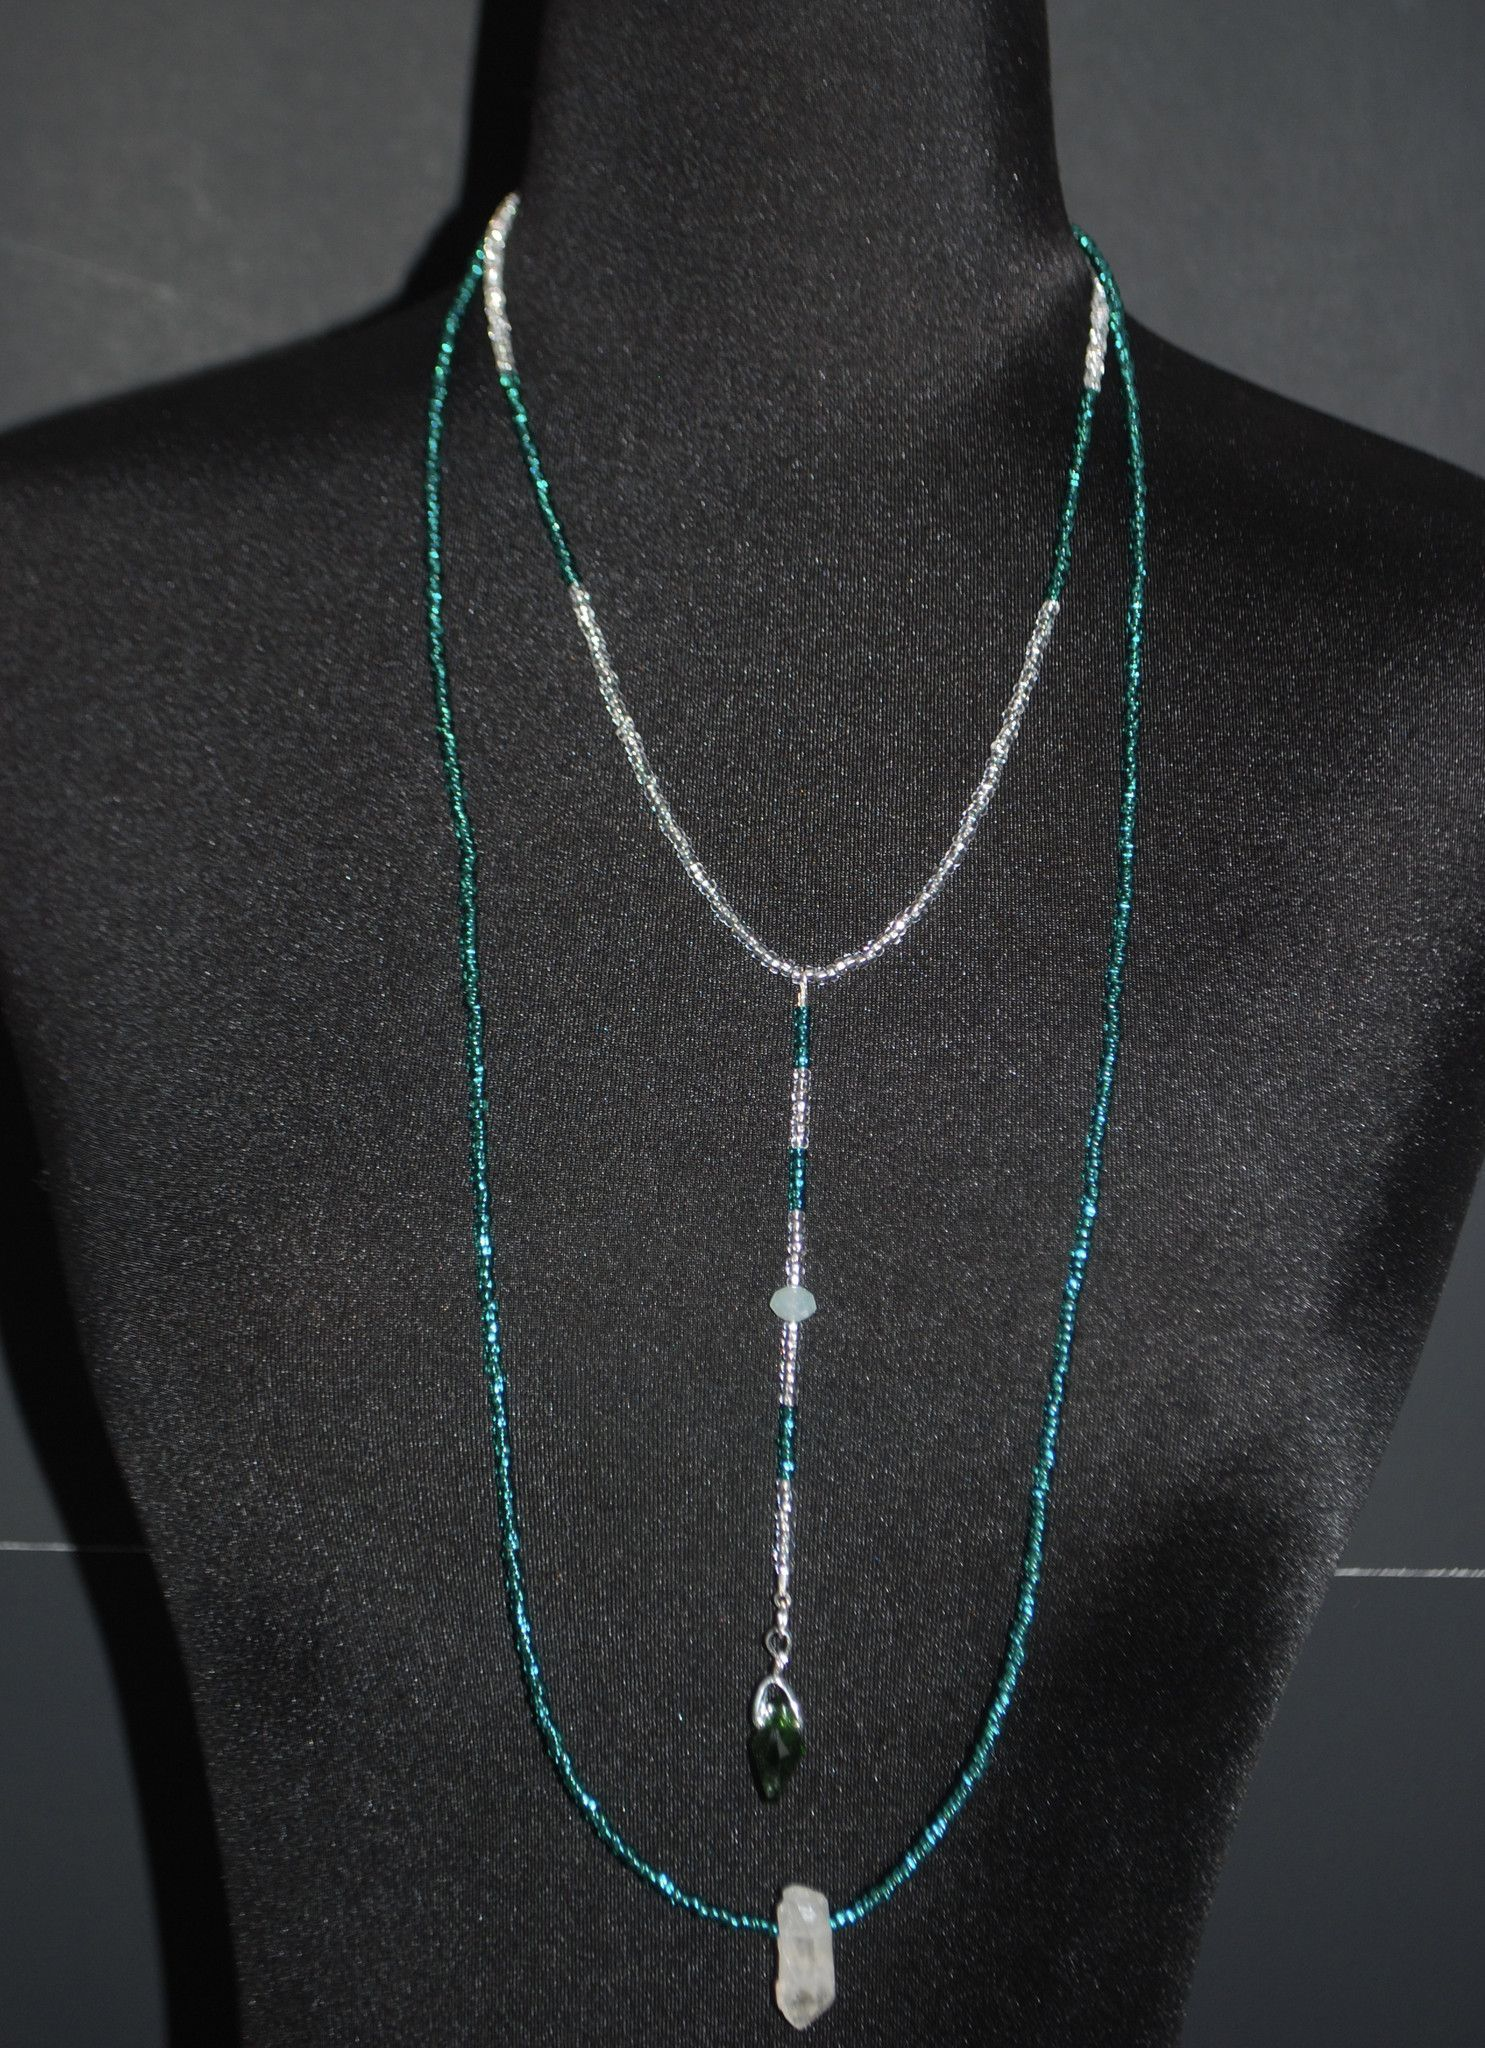 Custommade Emerald and Crystal Boho Necklace